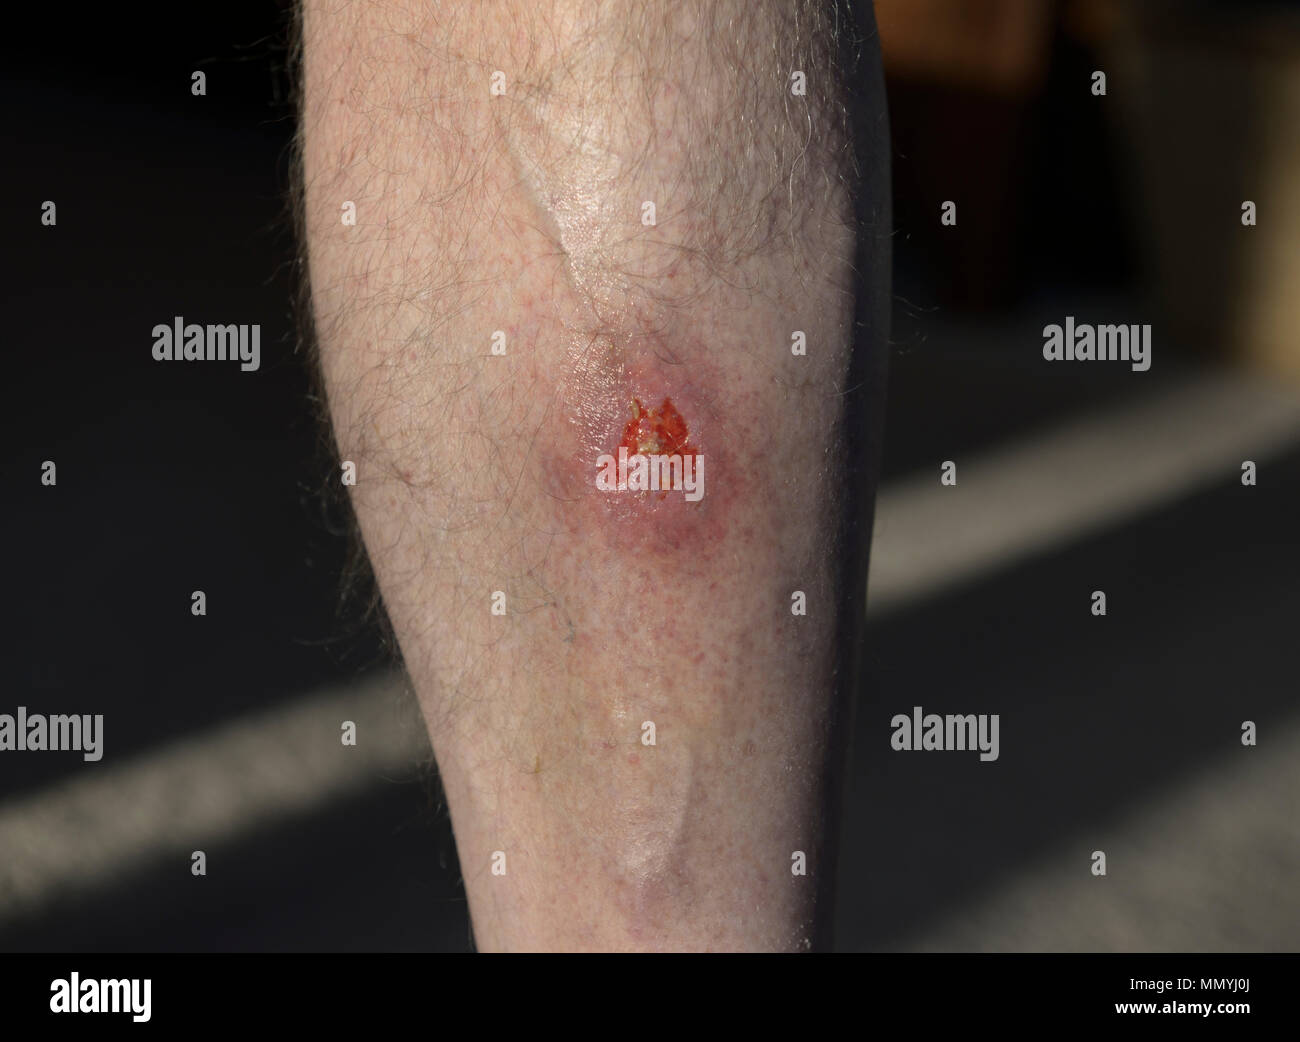 Open lower leg wound with cellulitis infection - Stock Image